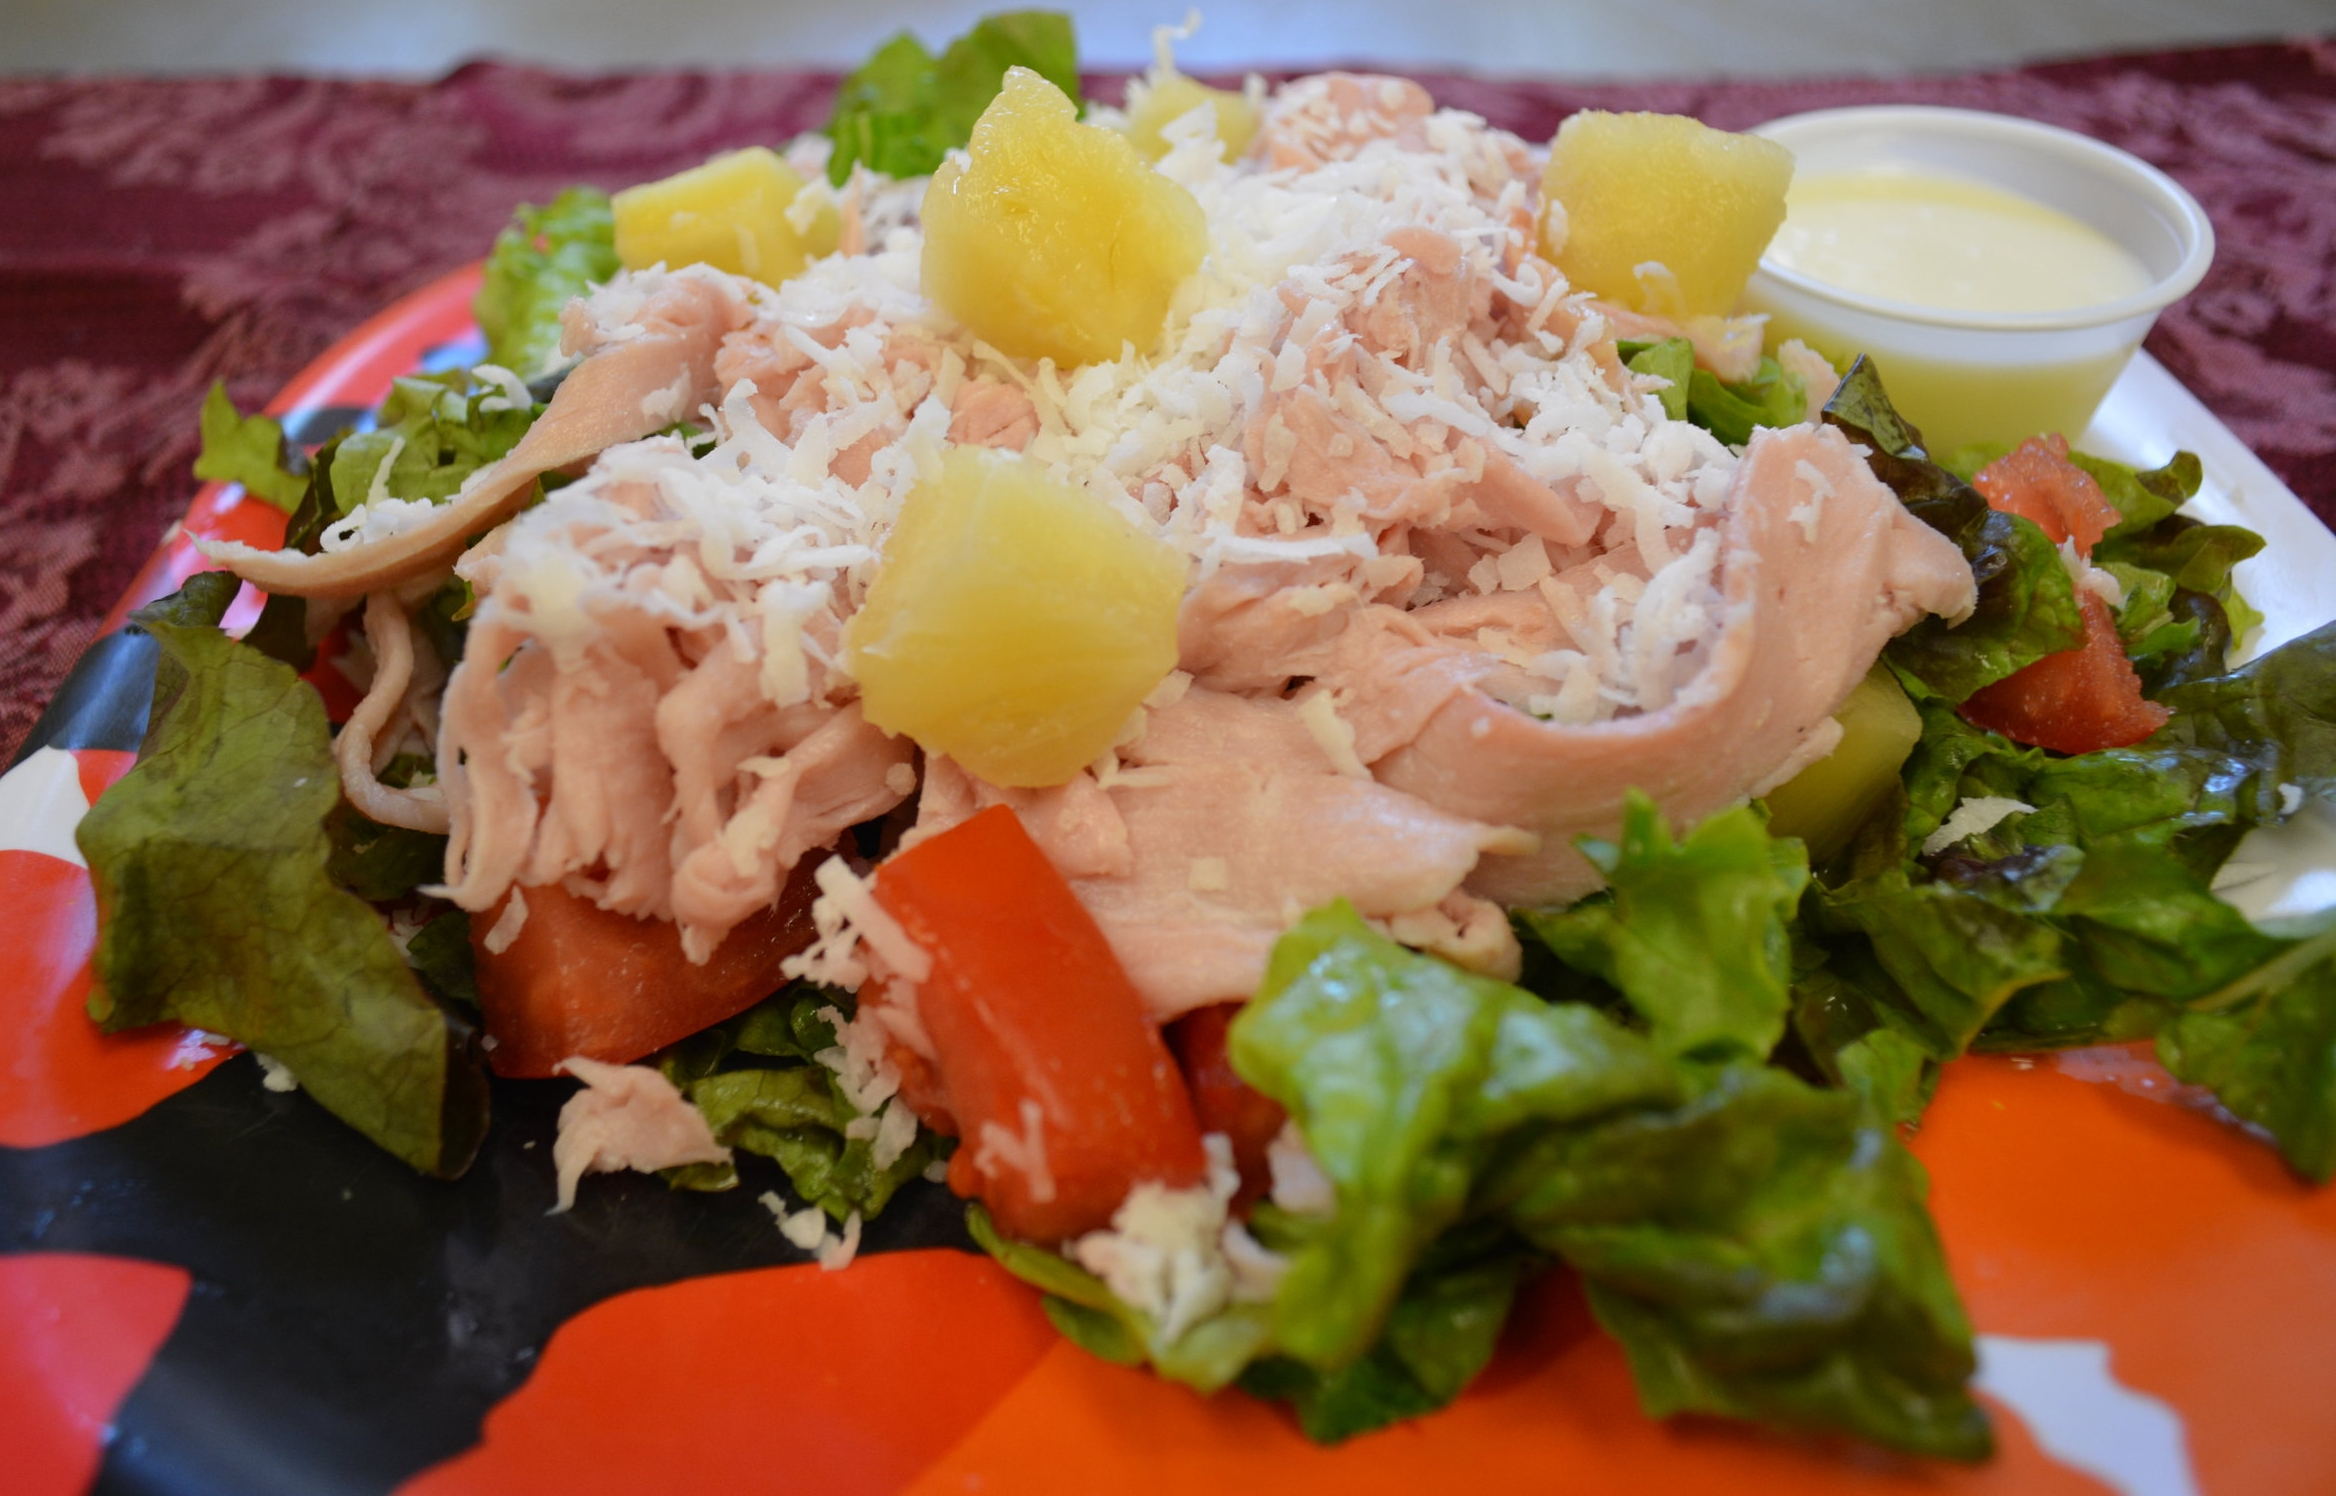 ALOHA - Fresh lettuce, ham, pineapples, tomatoes,and shredded coconut, served with homemade lime dressing